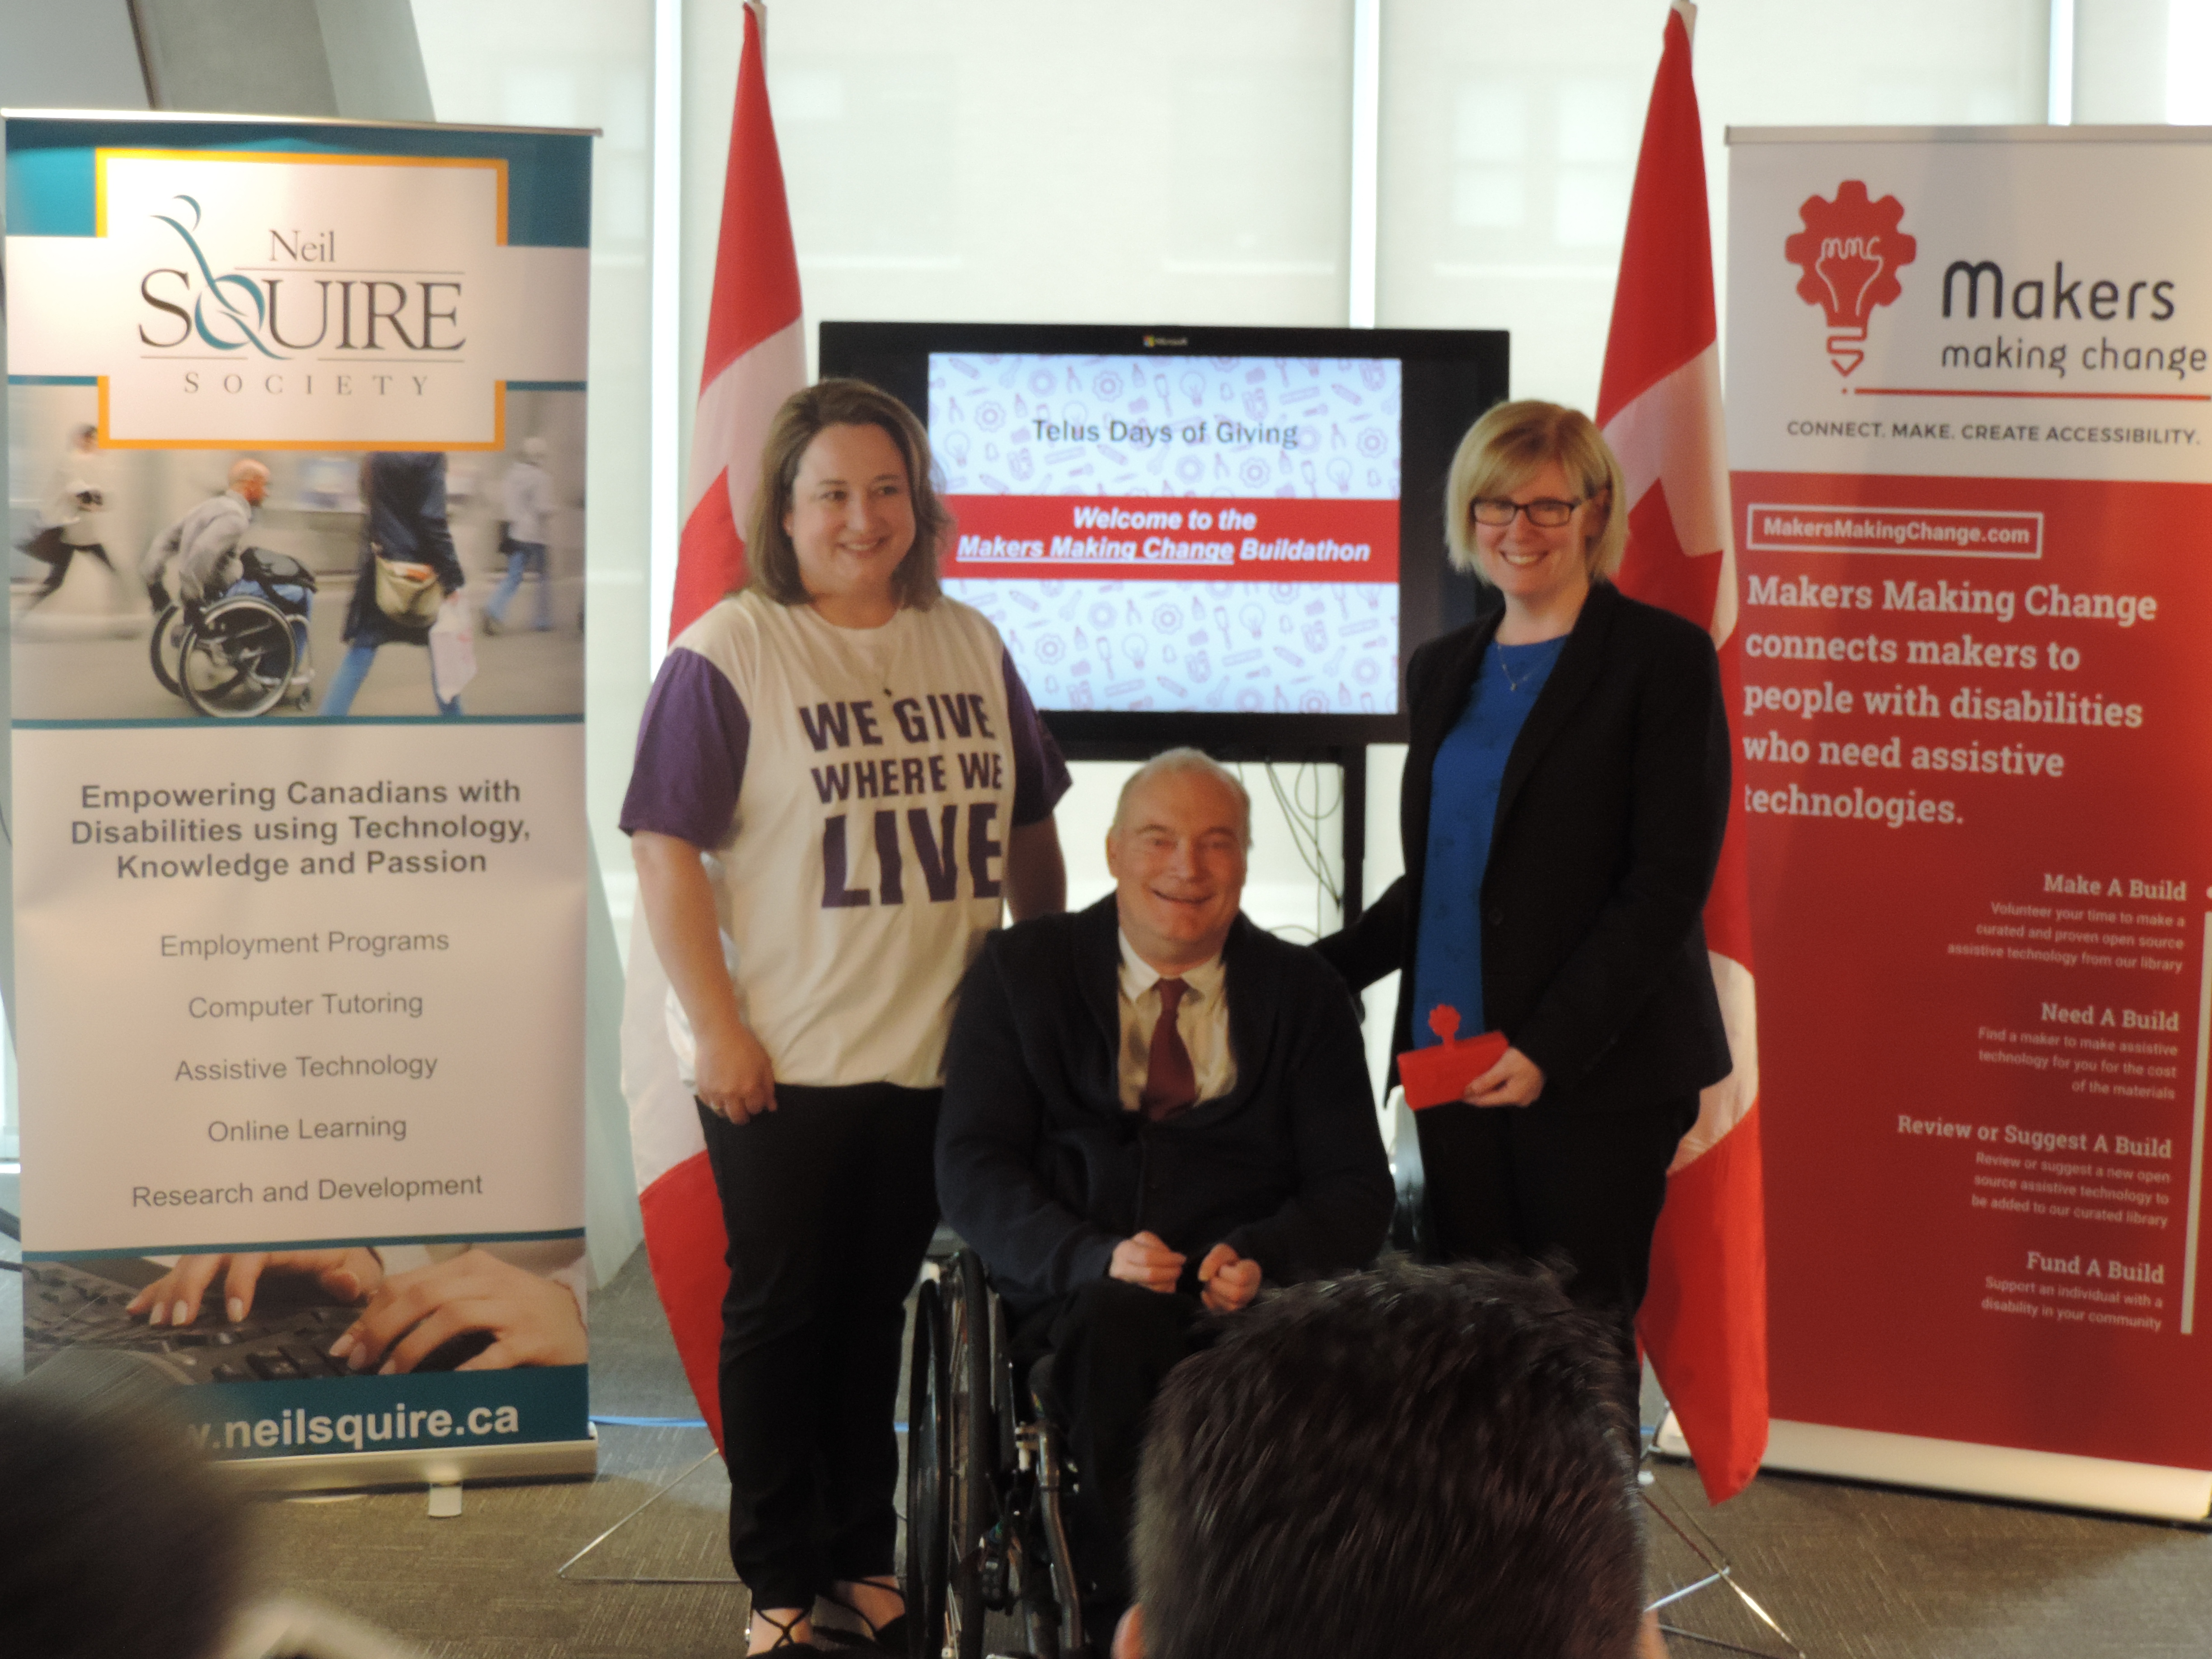 Pictured left-to-right: TELUS International Senior Vice-President and Chief Corporate Officer, Marilyn Tyfting; Neil Squire Society Executive Director, Gary Birch; and Minister of Sport and Persons with Disabilities, Carla Qualtrough.